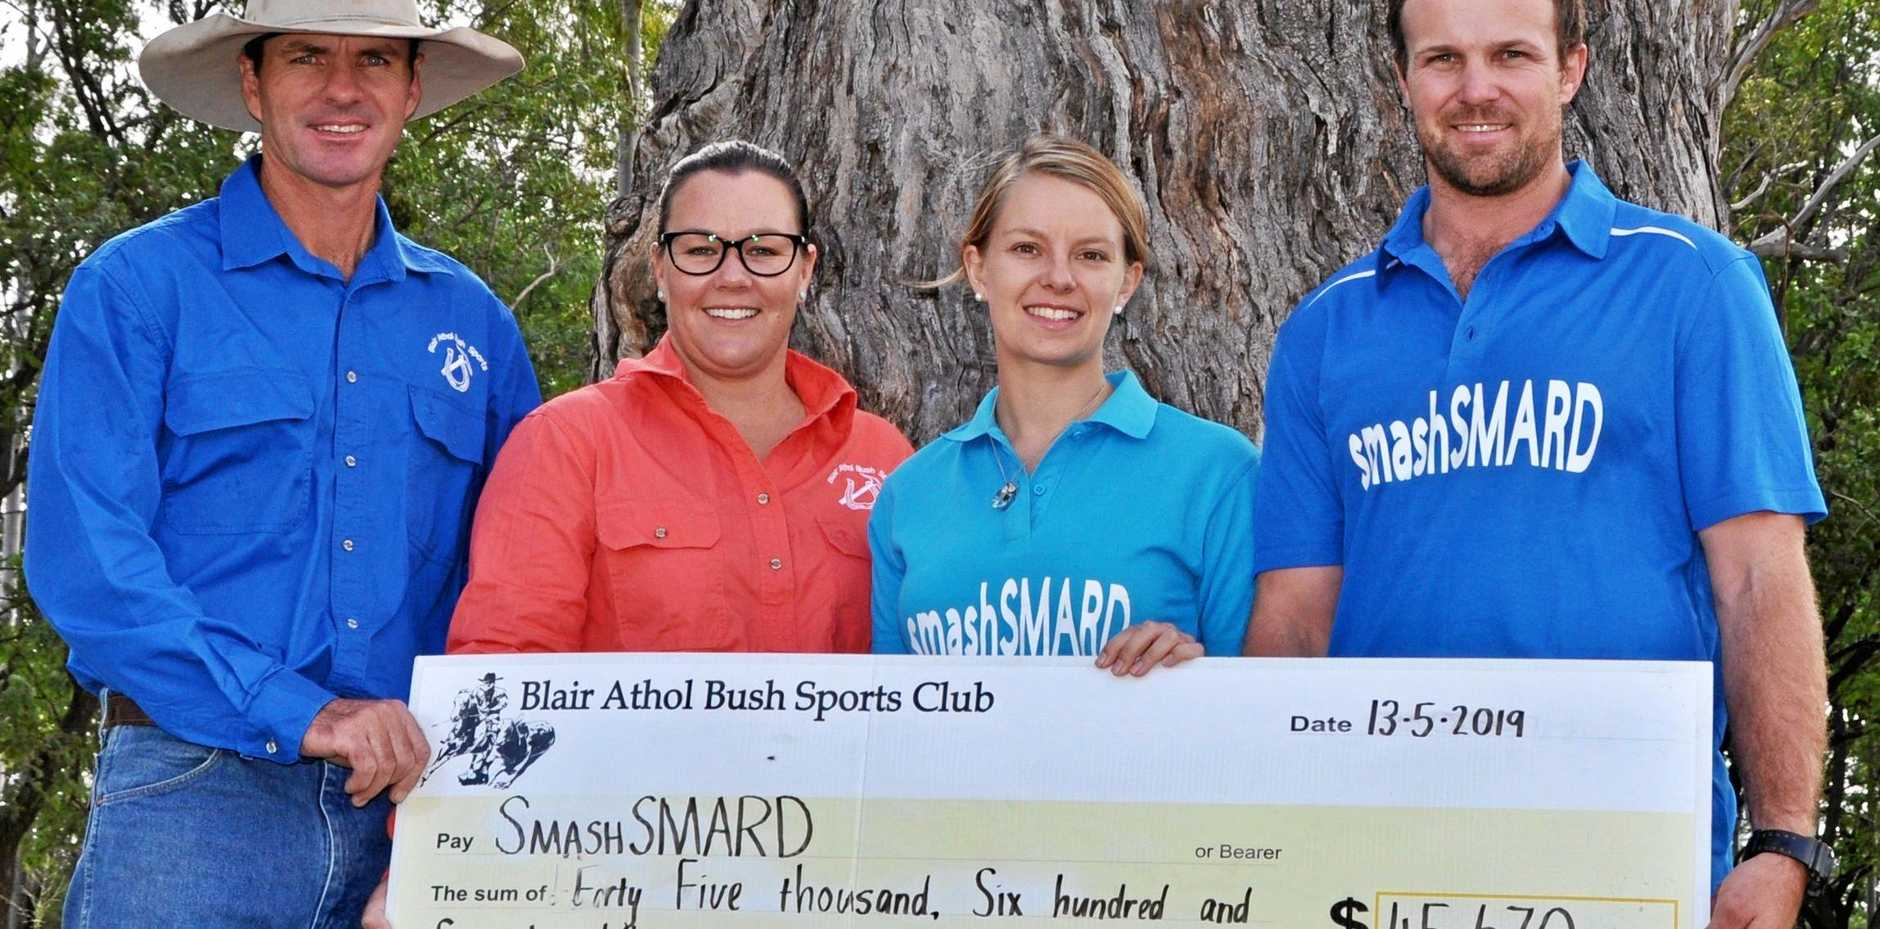 COMMUNITY GENEROSITY: Jeff Cook (President), Elise Lawrence (Treasurer) handing over a cheque to SmashSMARD representatives and fellow committee members Dean Williams & Crystal Watson.